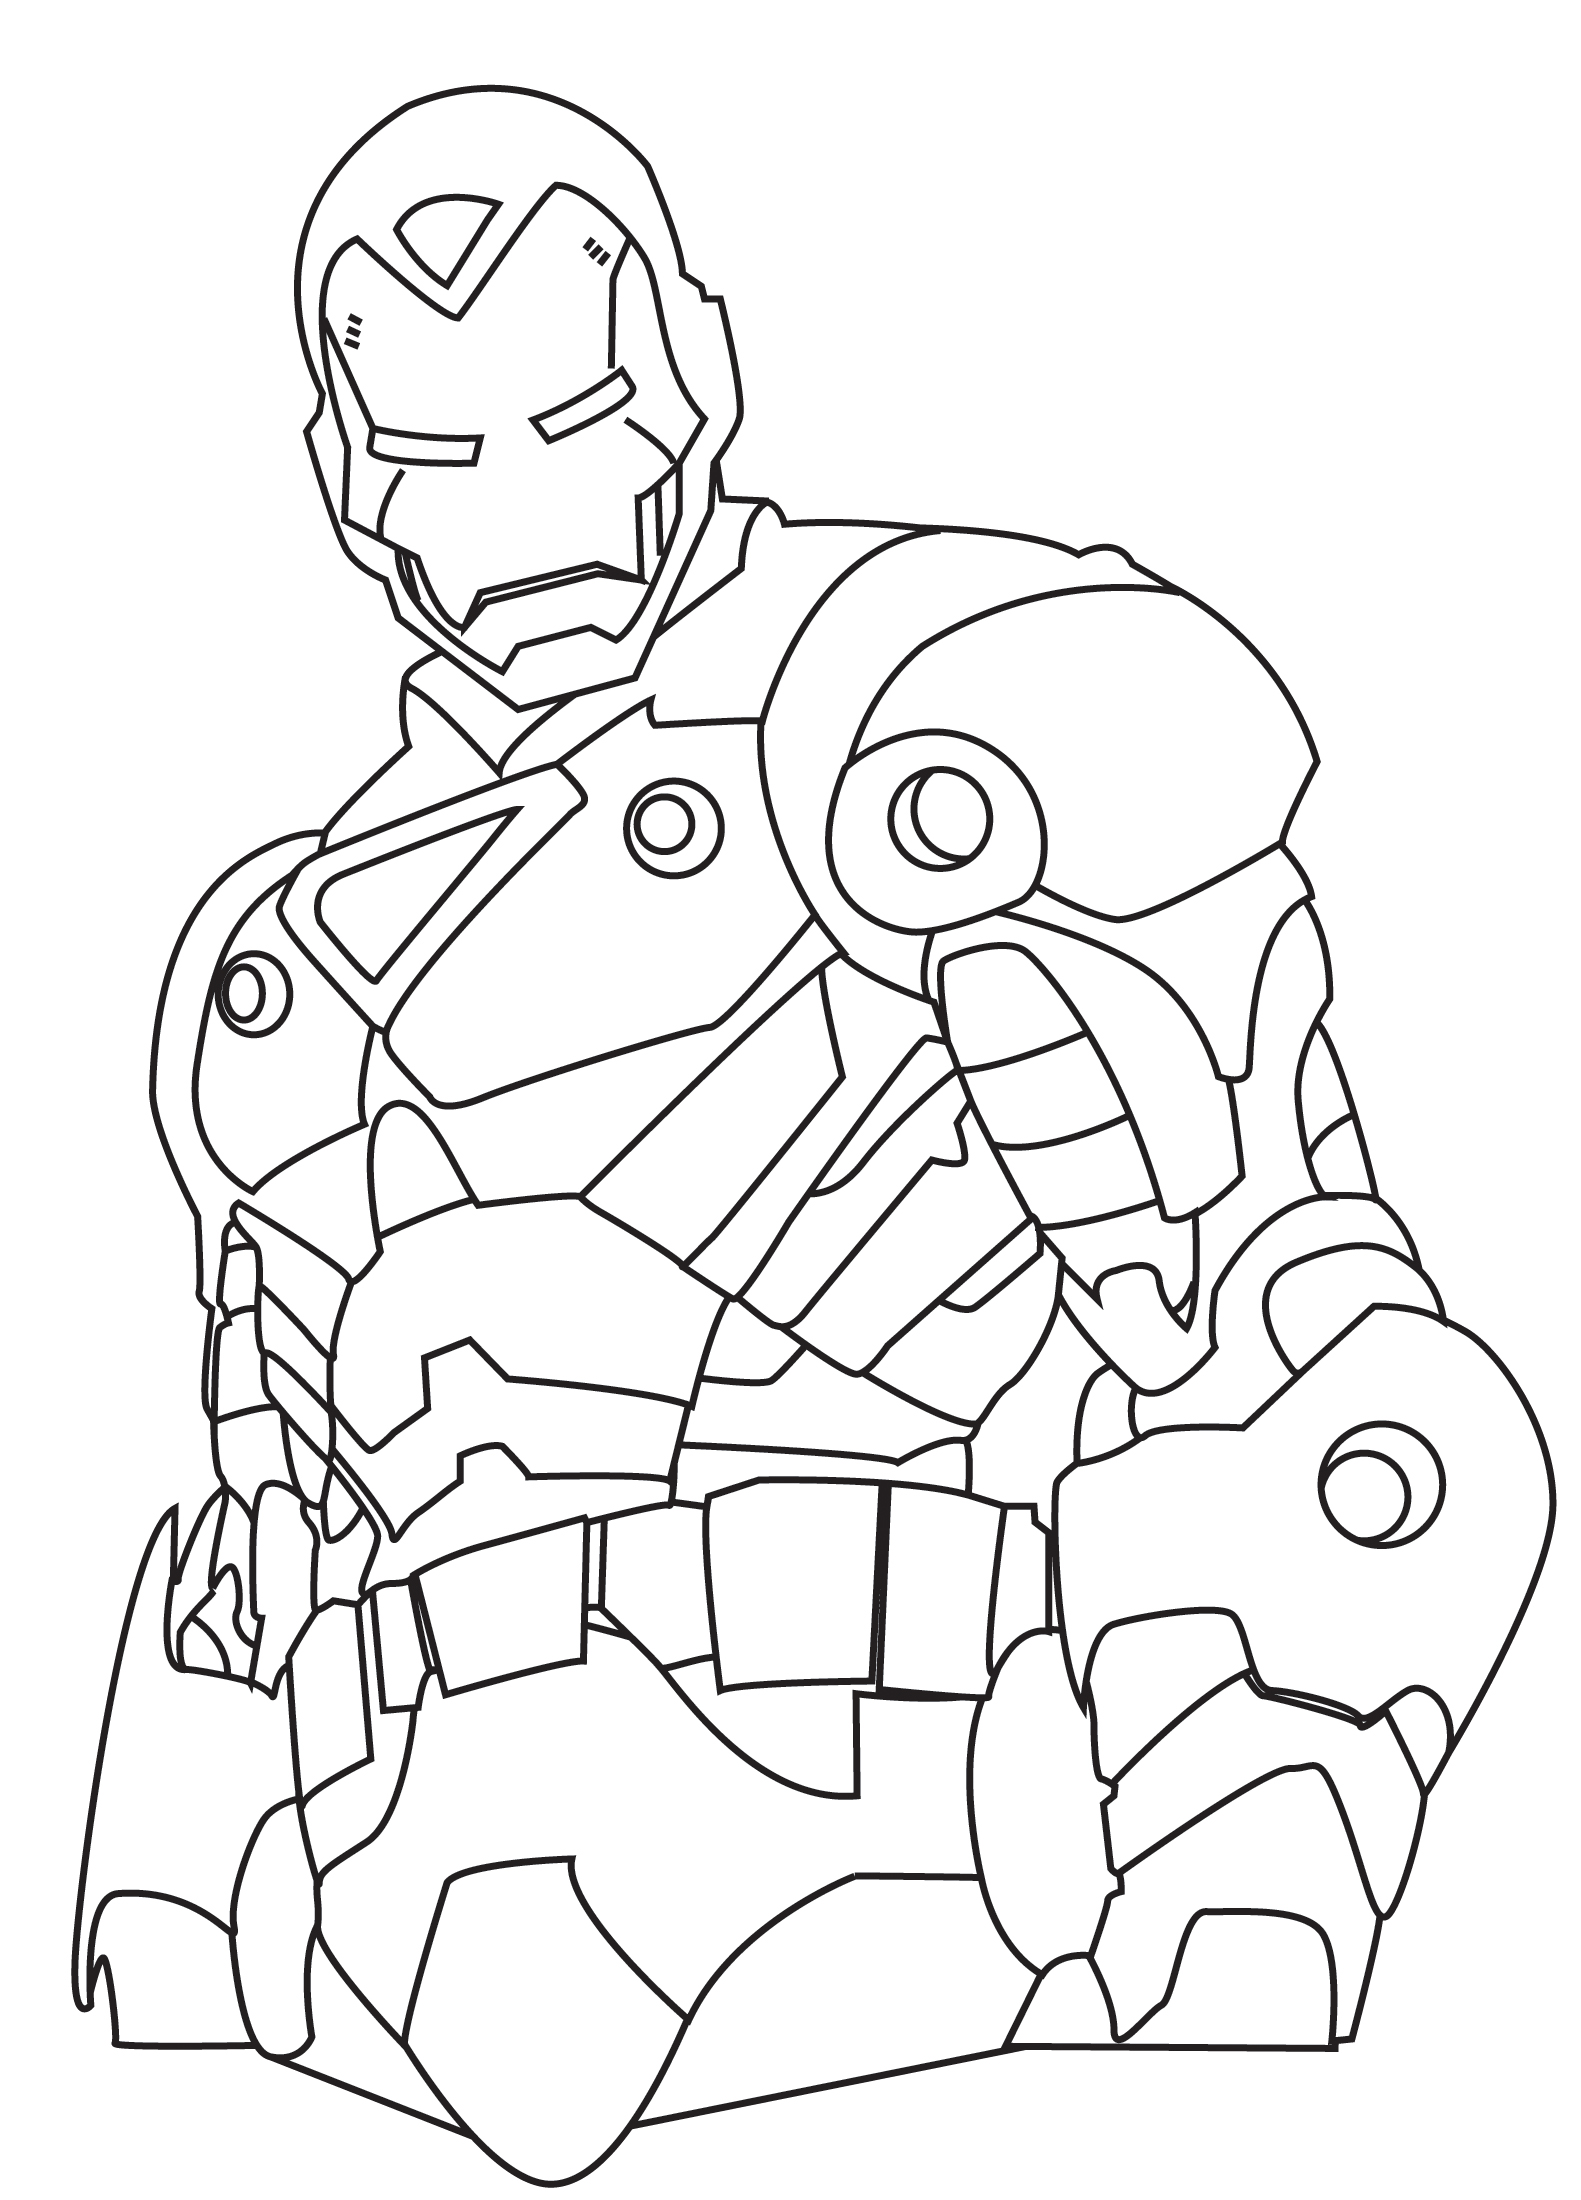 Free Iron Man Clipart Black And White, Download Free Clip Art, Free.